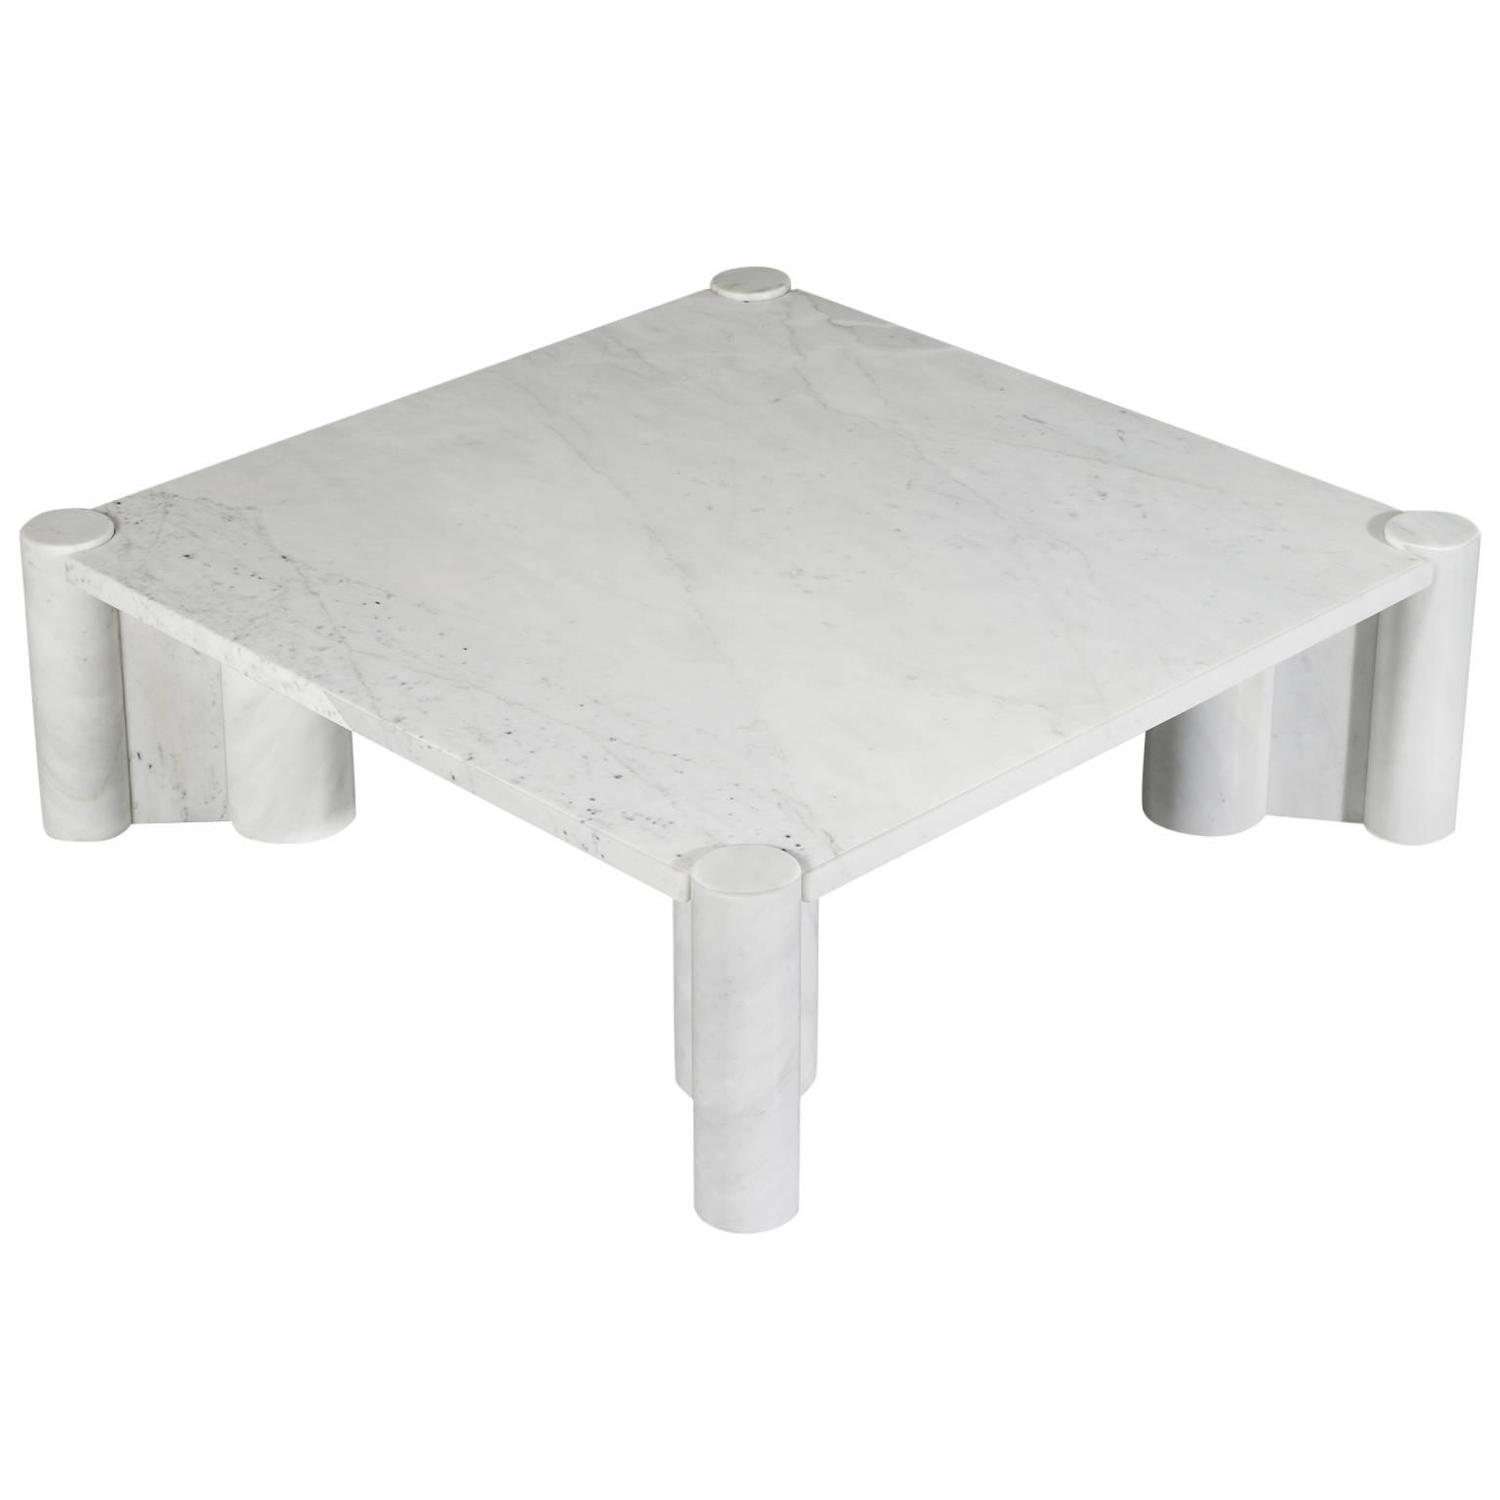 Gae Aulenti Marble Jumbo Coffee Table for Knoll International